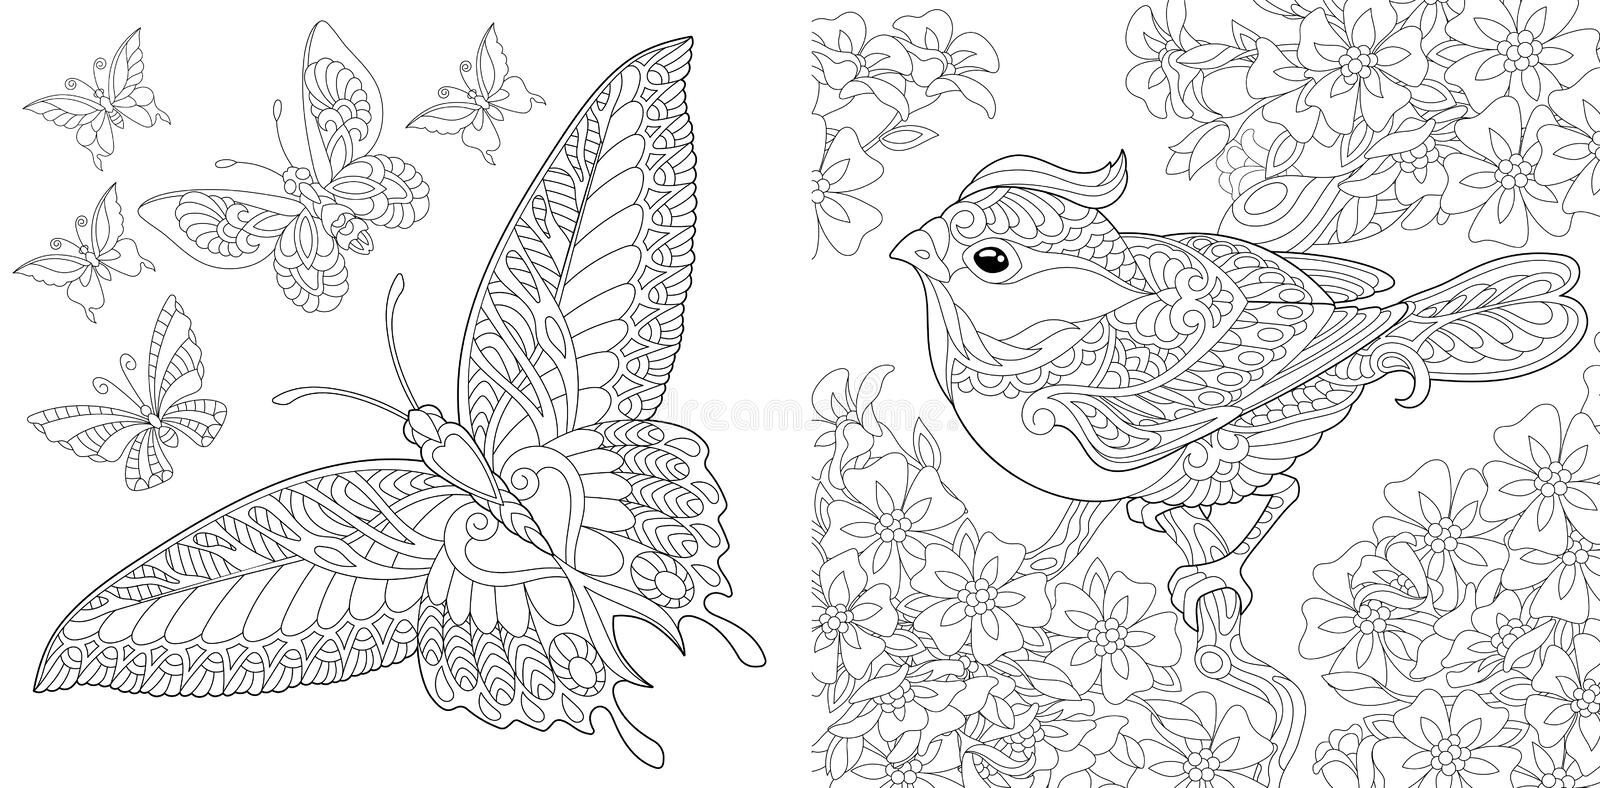 Coloring pages for adults. Lovely Birds Couple. Spring Flowers ... | 394x800